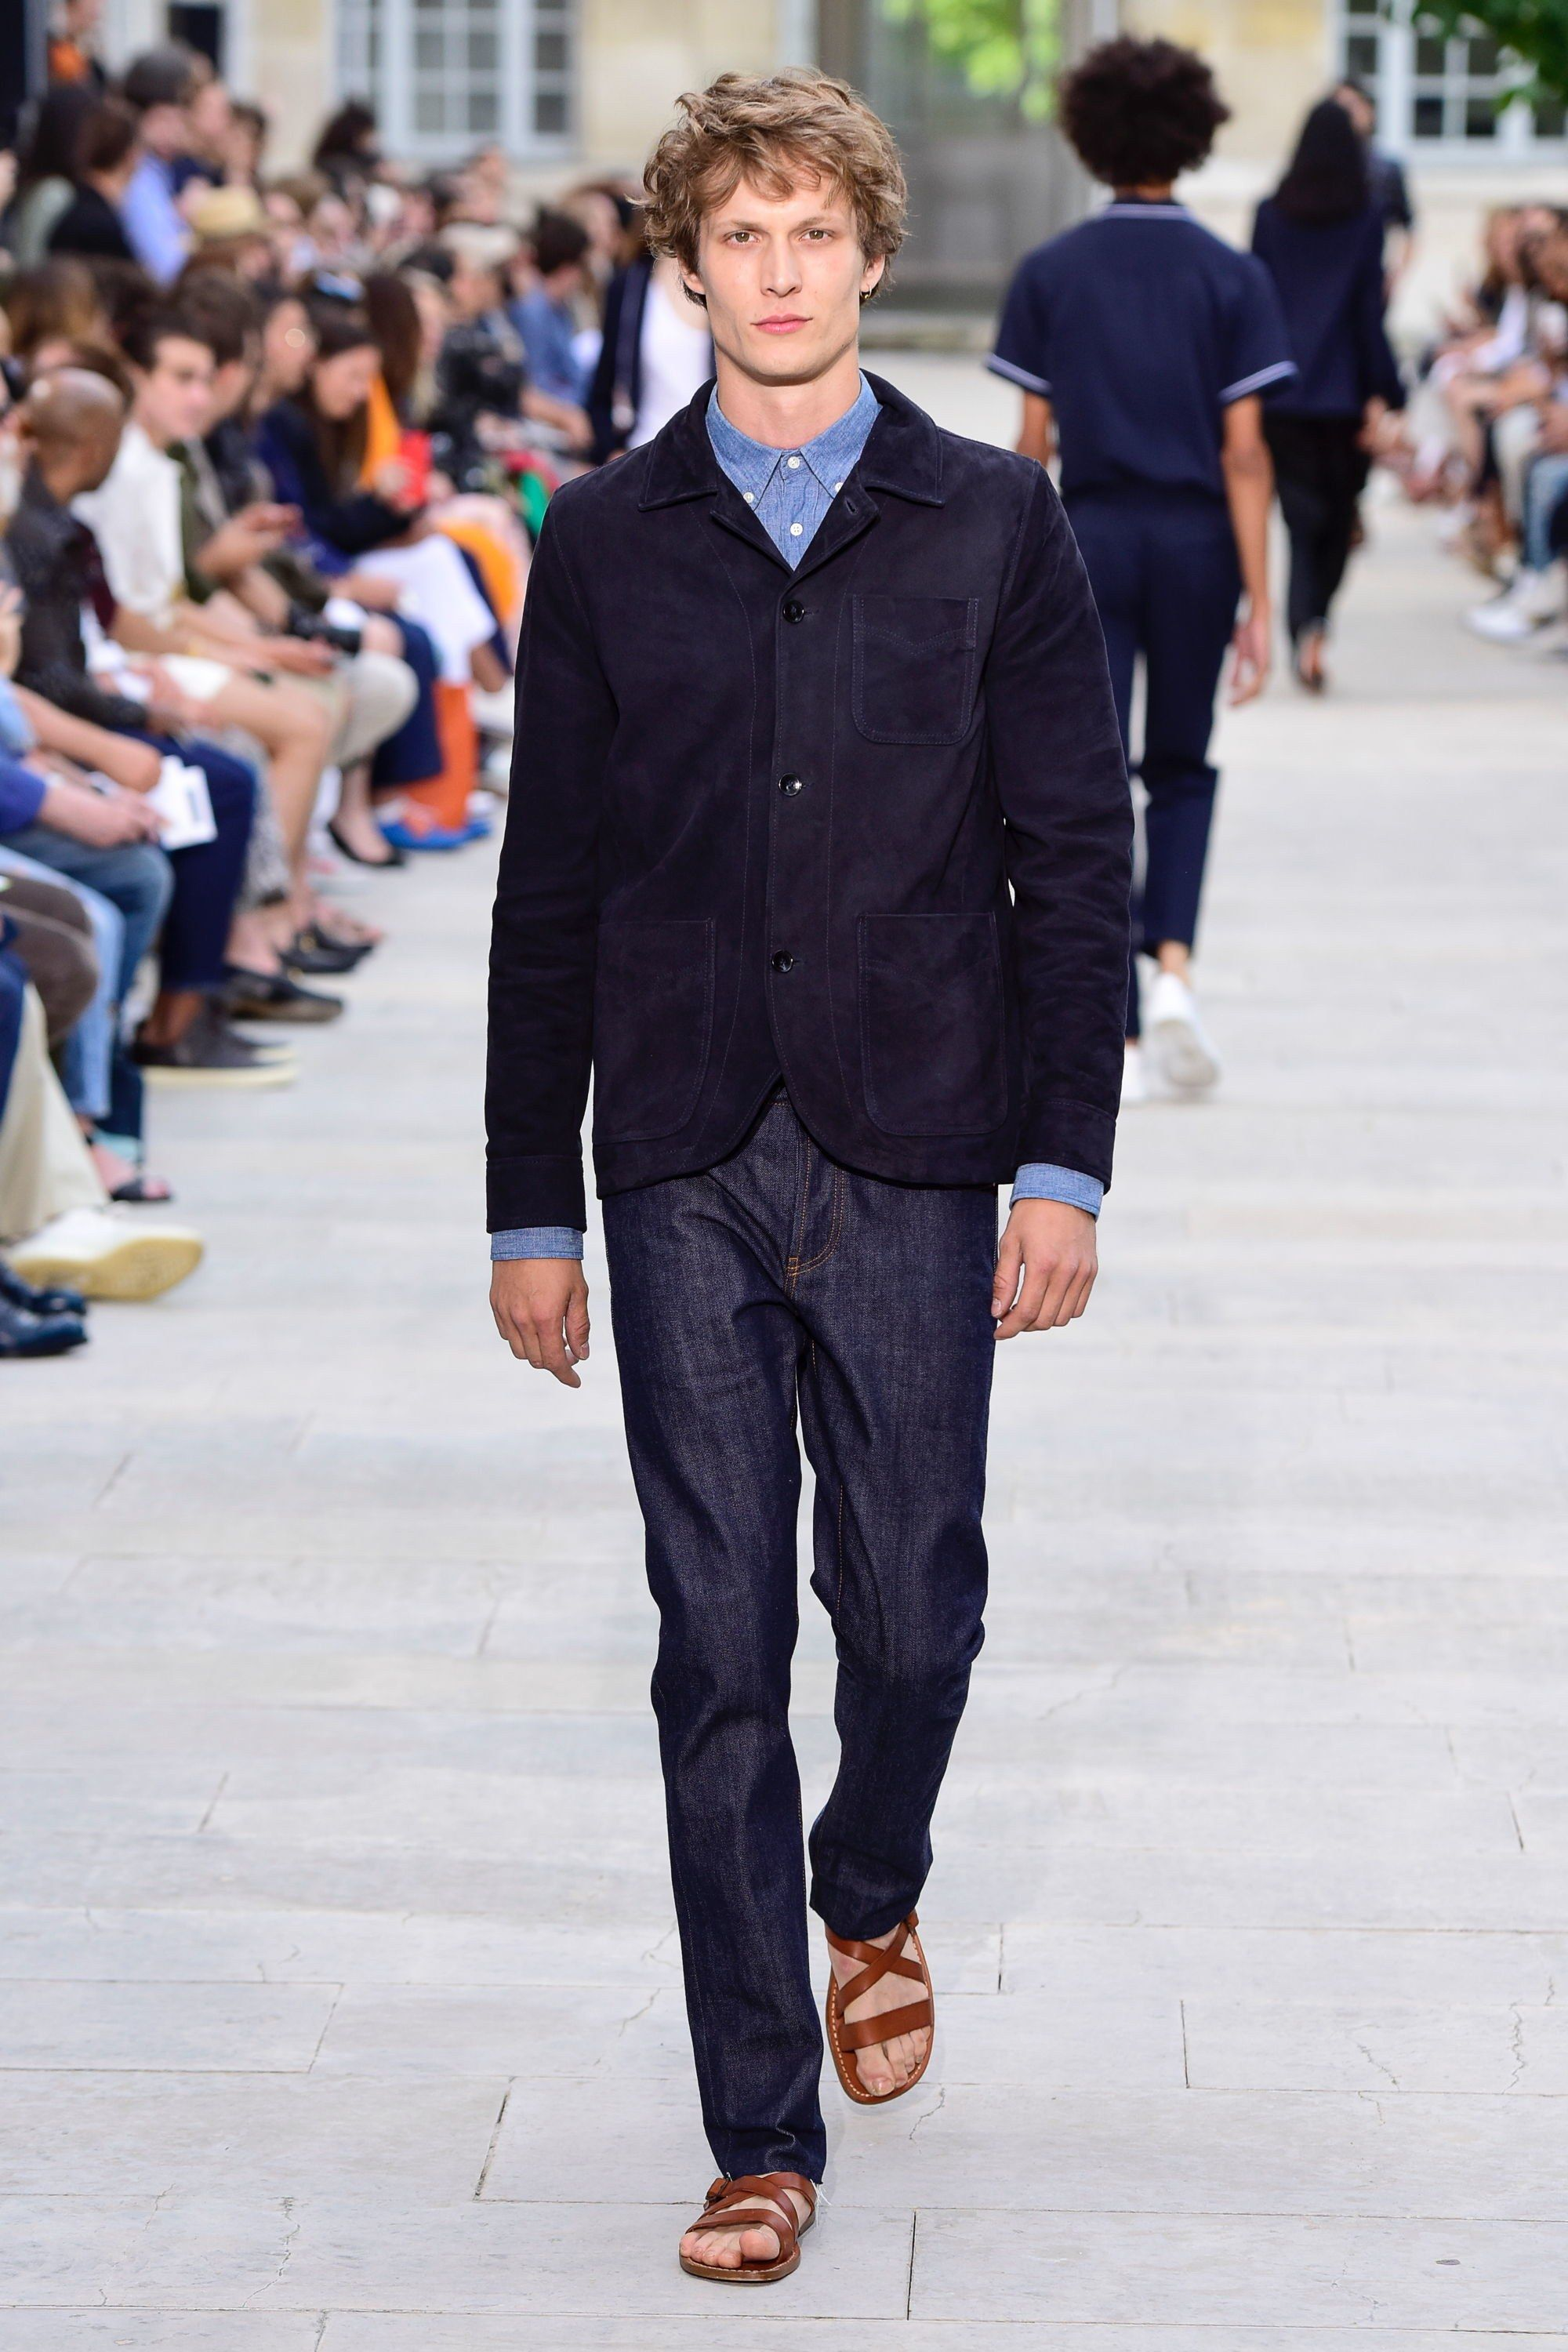 Officine Générale Spring 2019 Menswear Fashion Show in 2019